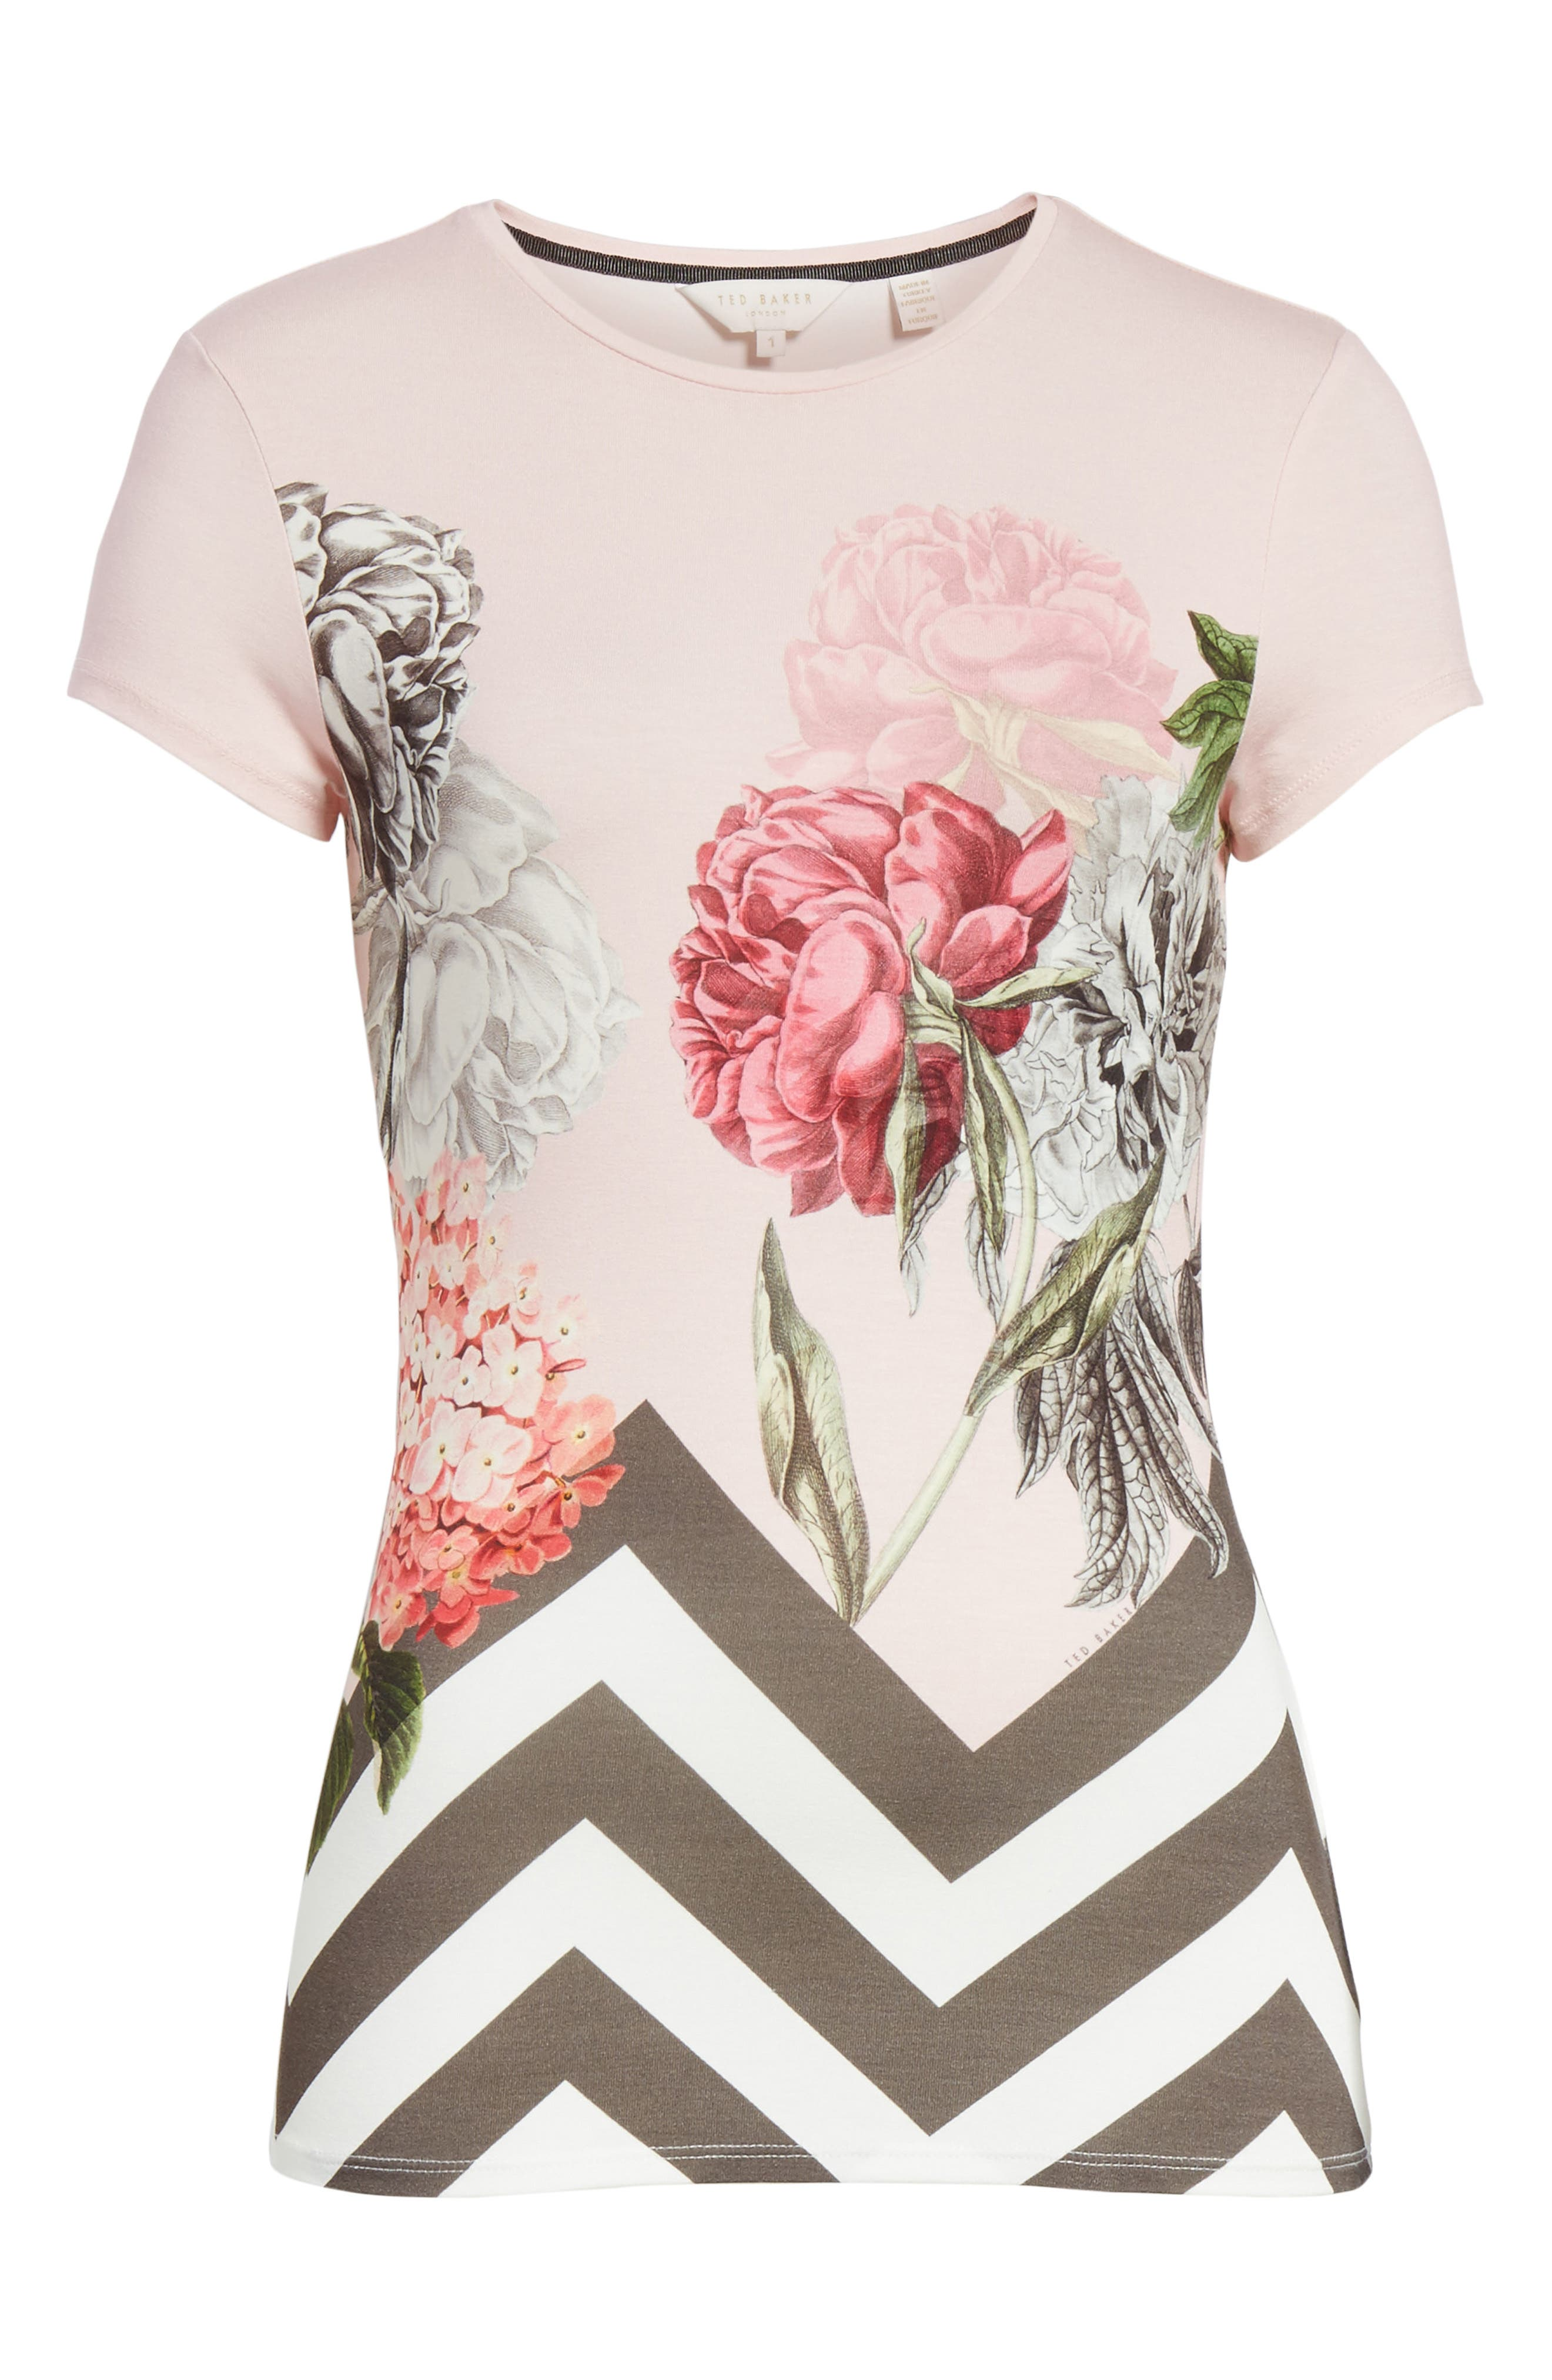 Palace Gardens Fitted Tee,                             Alternate thumbnail 6, color,                             Dusky Pink